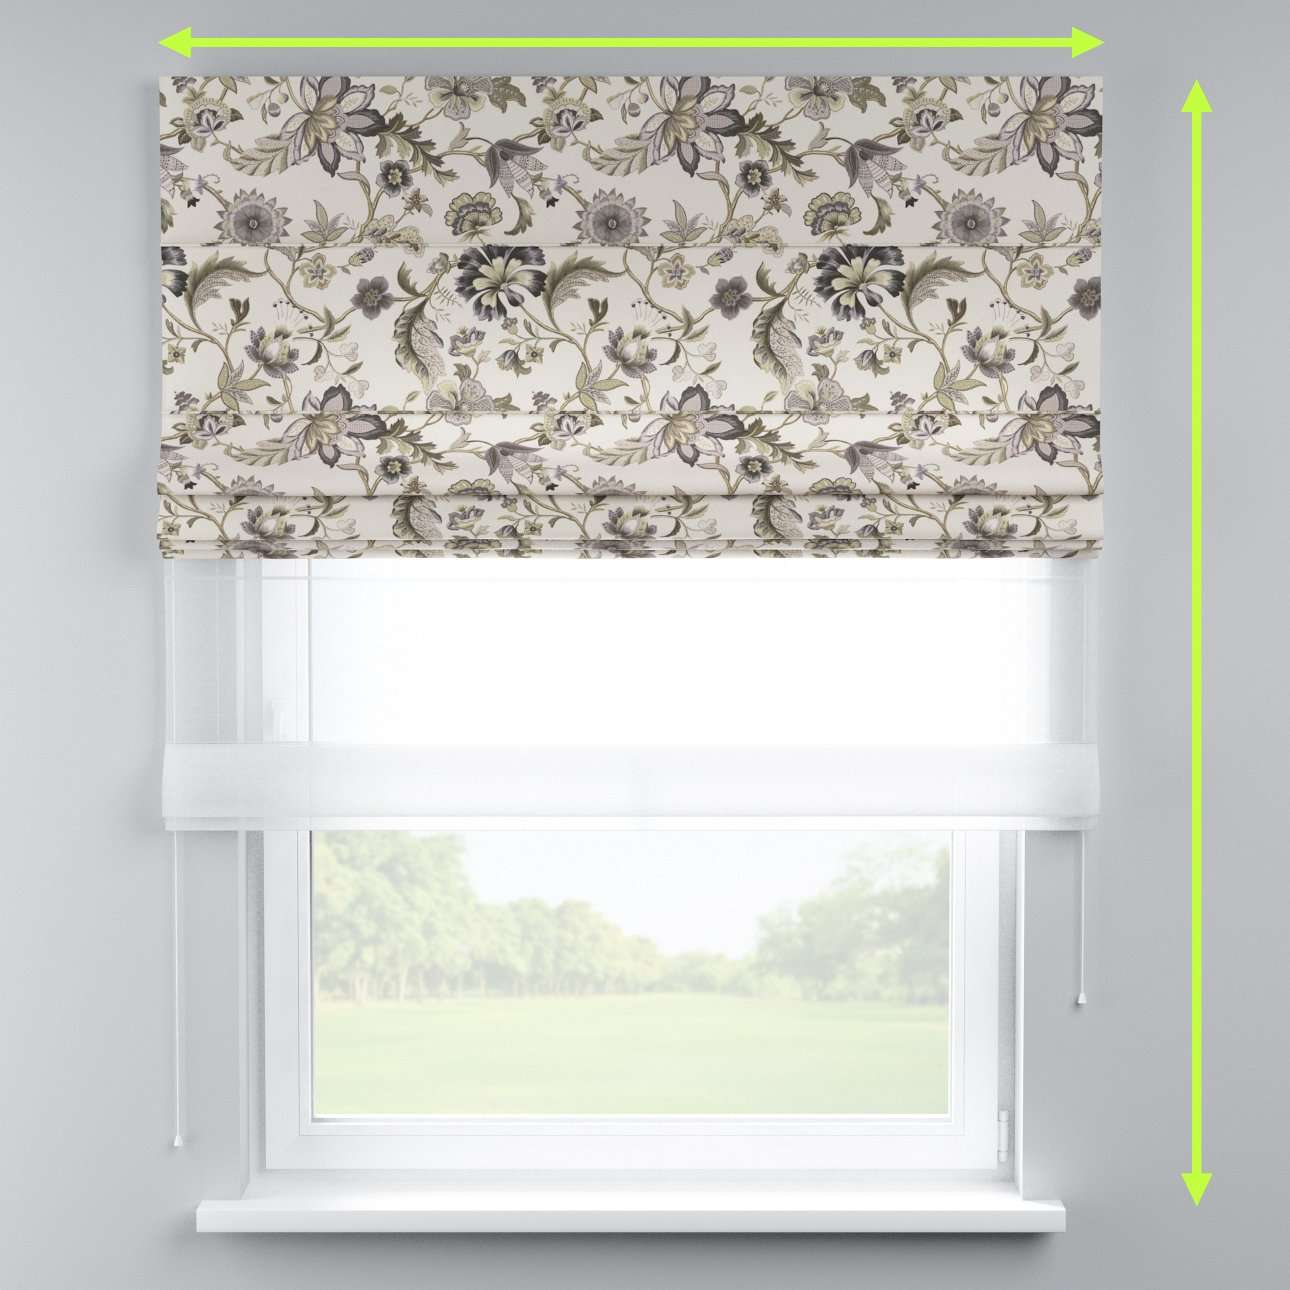 Voile and fabric roman blind (DUO II) in collection Londres, fabric: 122-03